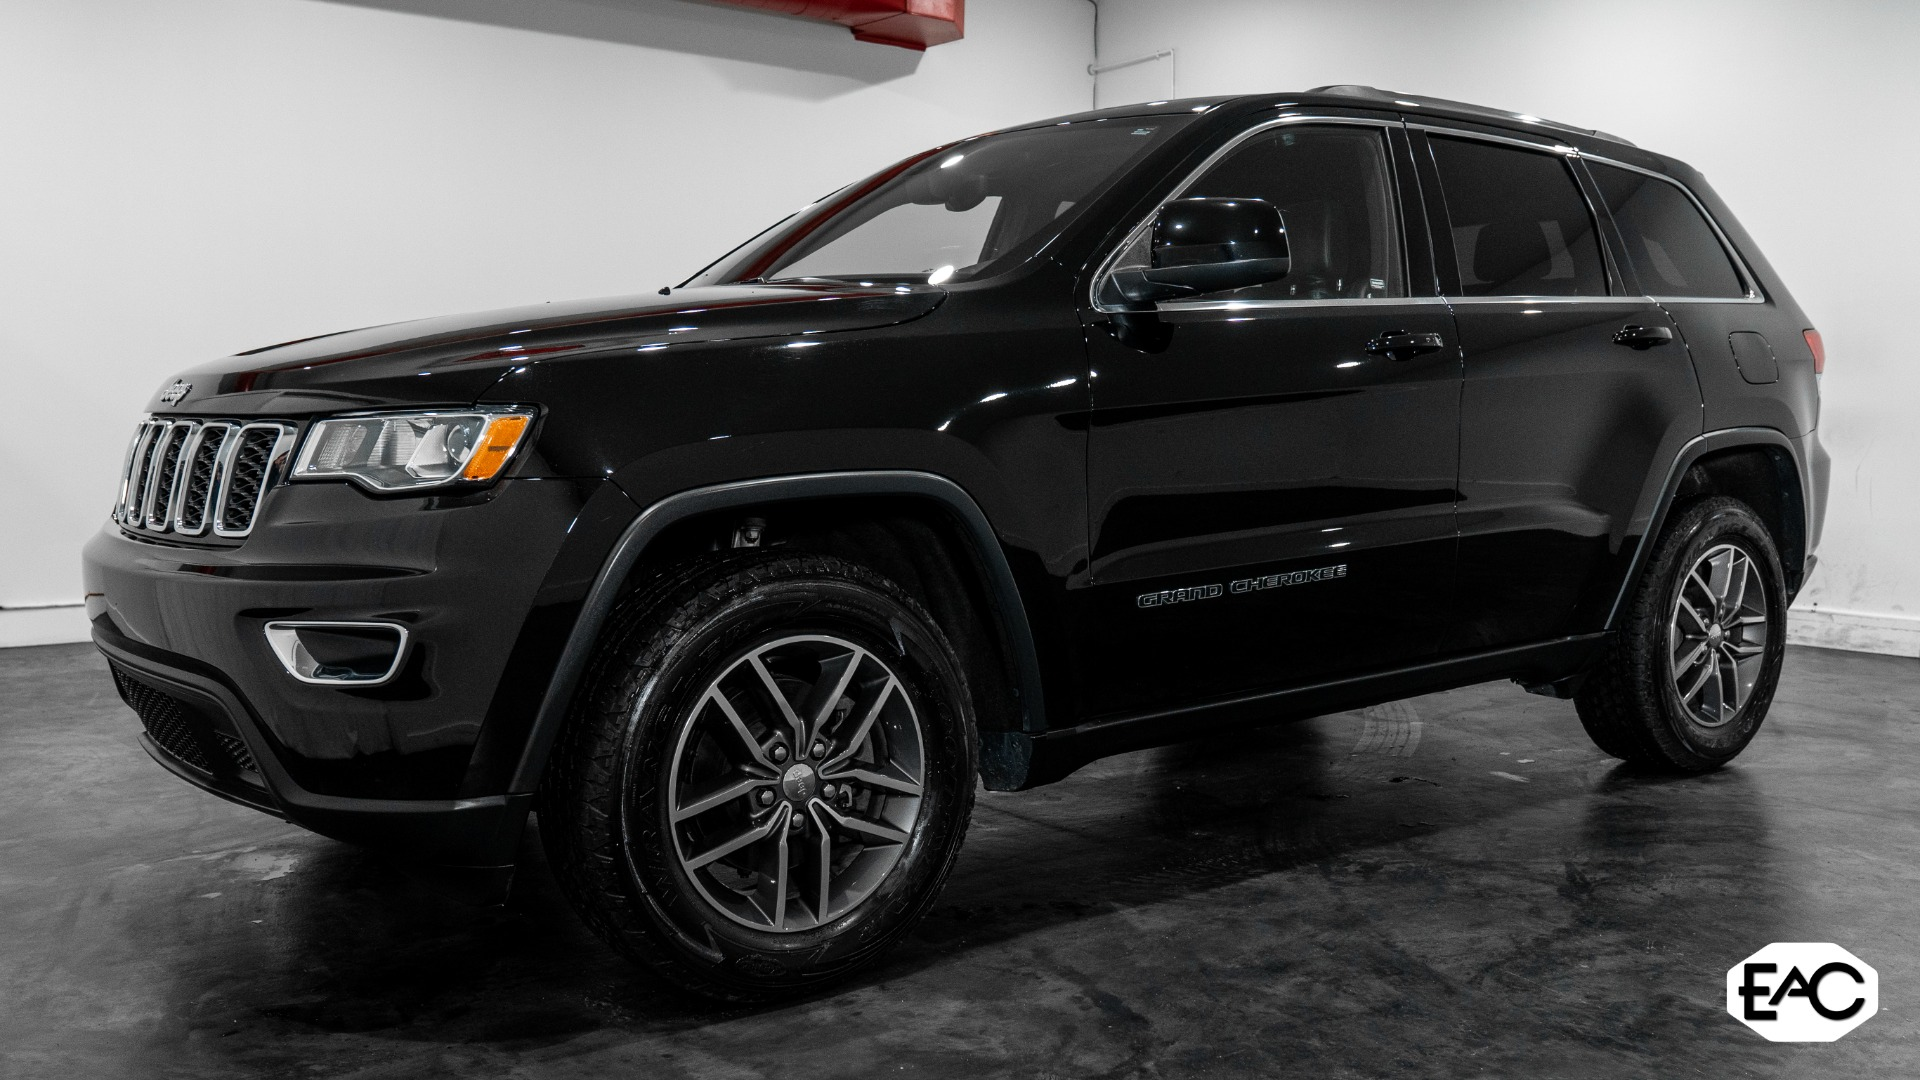 Used 2018 Jeep Grand Cherokee Laredo E for sale Sold at Empire Auto Collection in Warren MI 48091 1